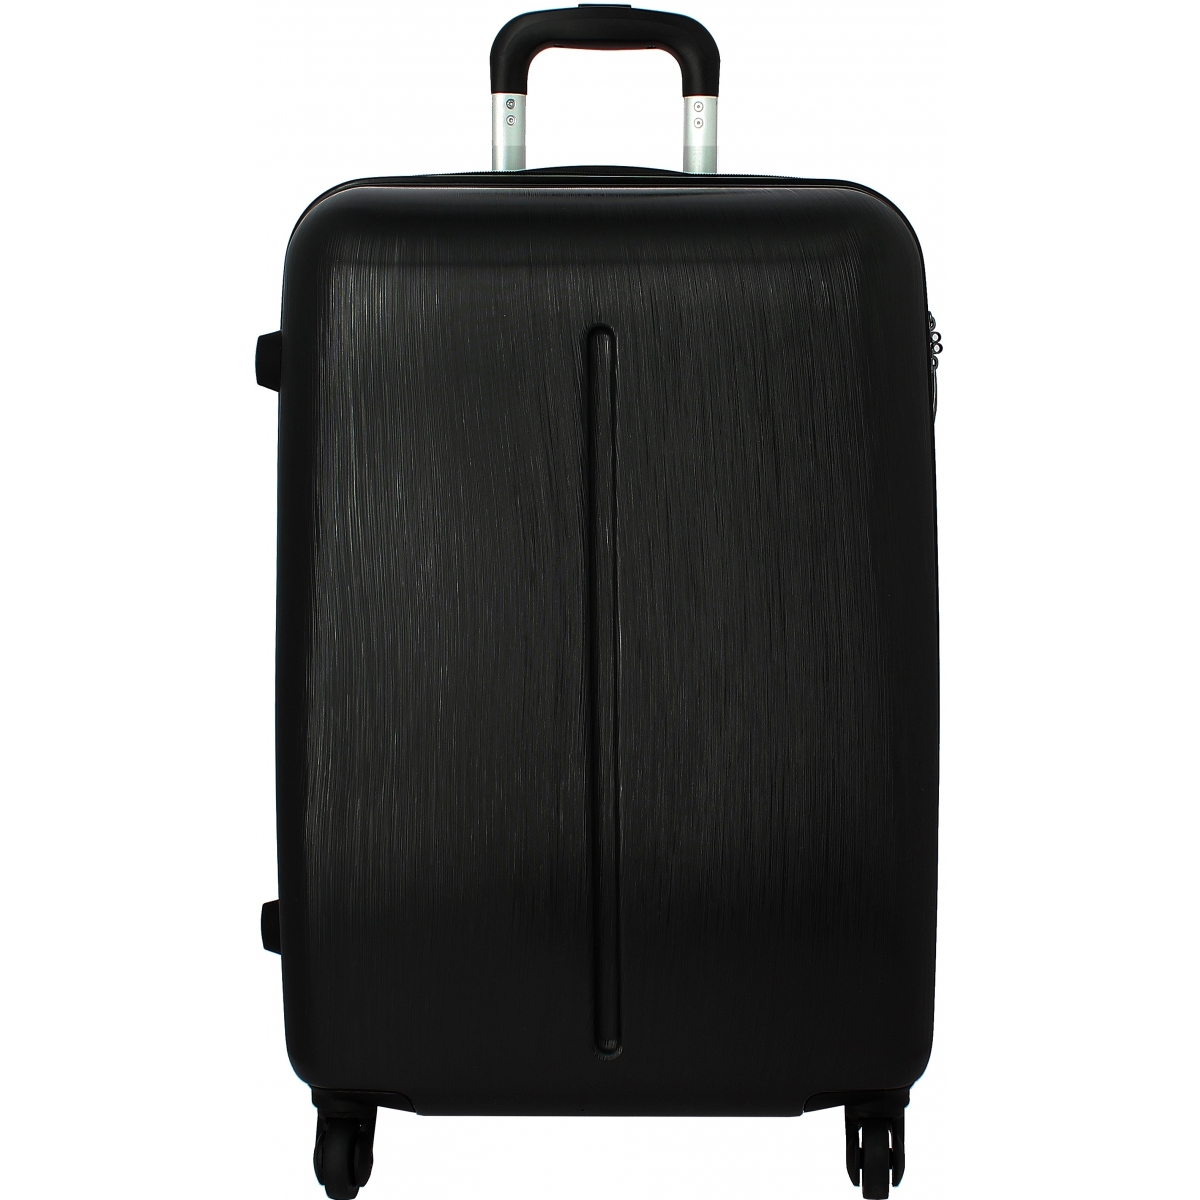 valise rigide david jones tsa taille g ba10141g. Black Bedroom Furniture Sets. Home Design Ideas